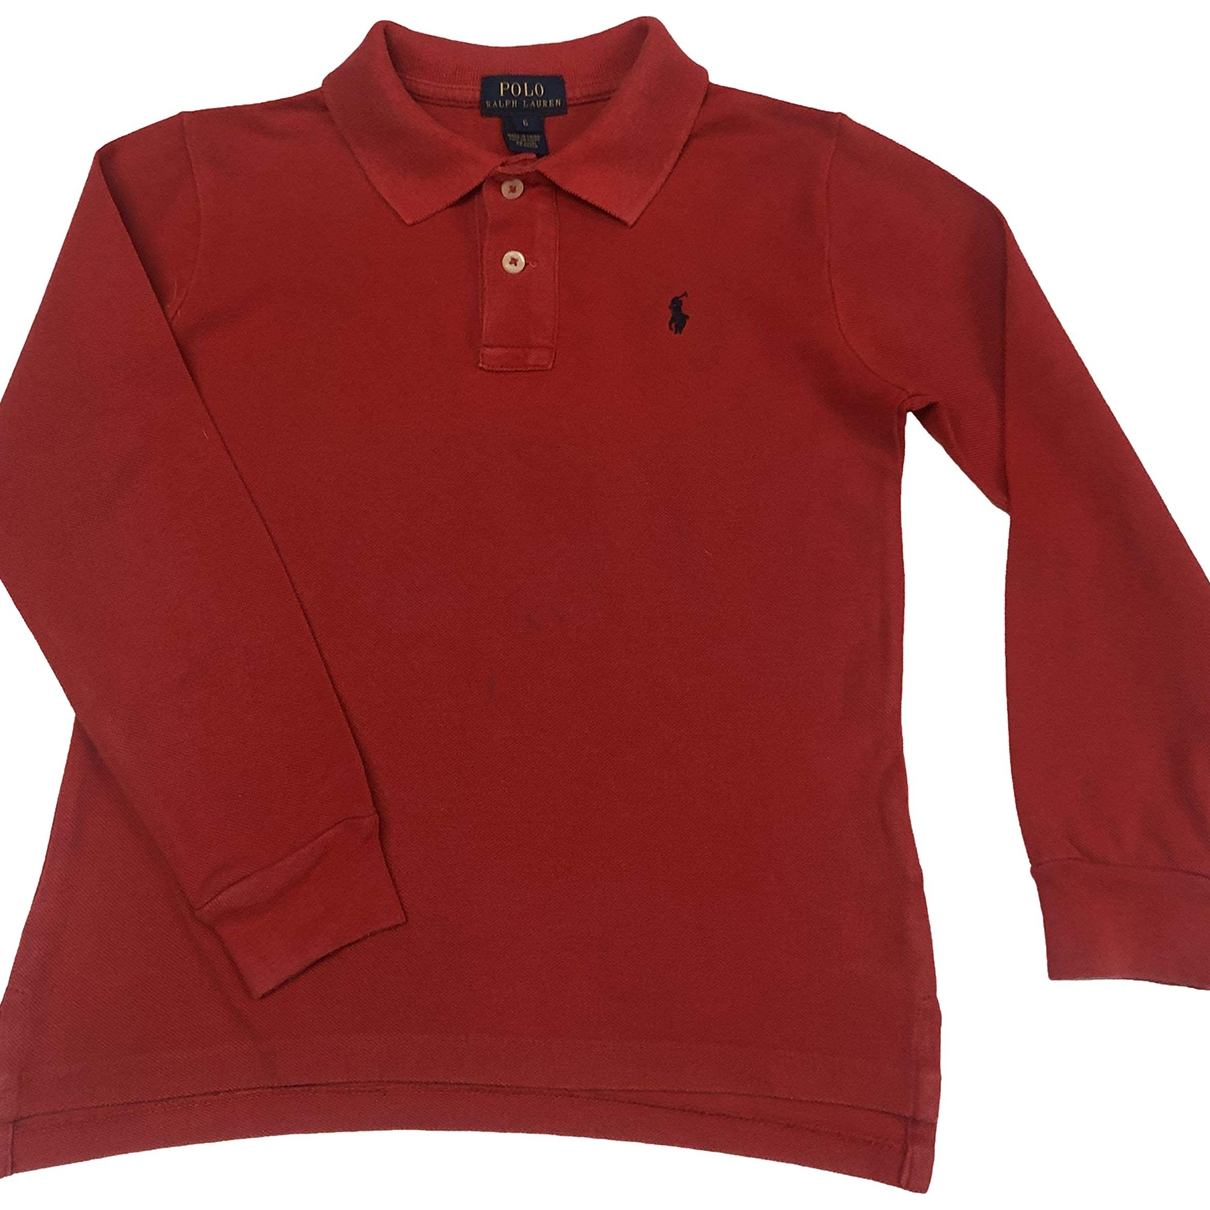 Polo Ralph Lauren \N Red Cotton  top for Kids 6 years - until 45 inches UK